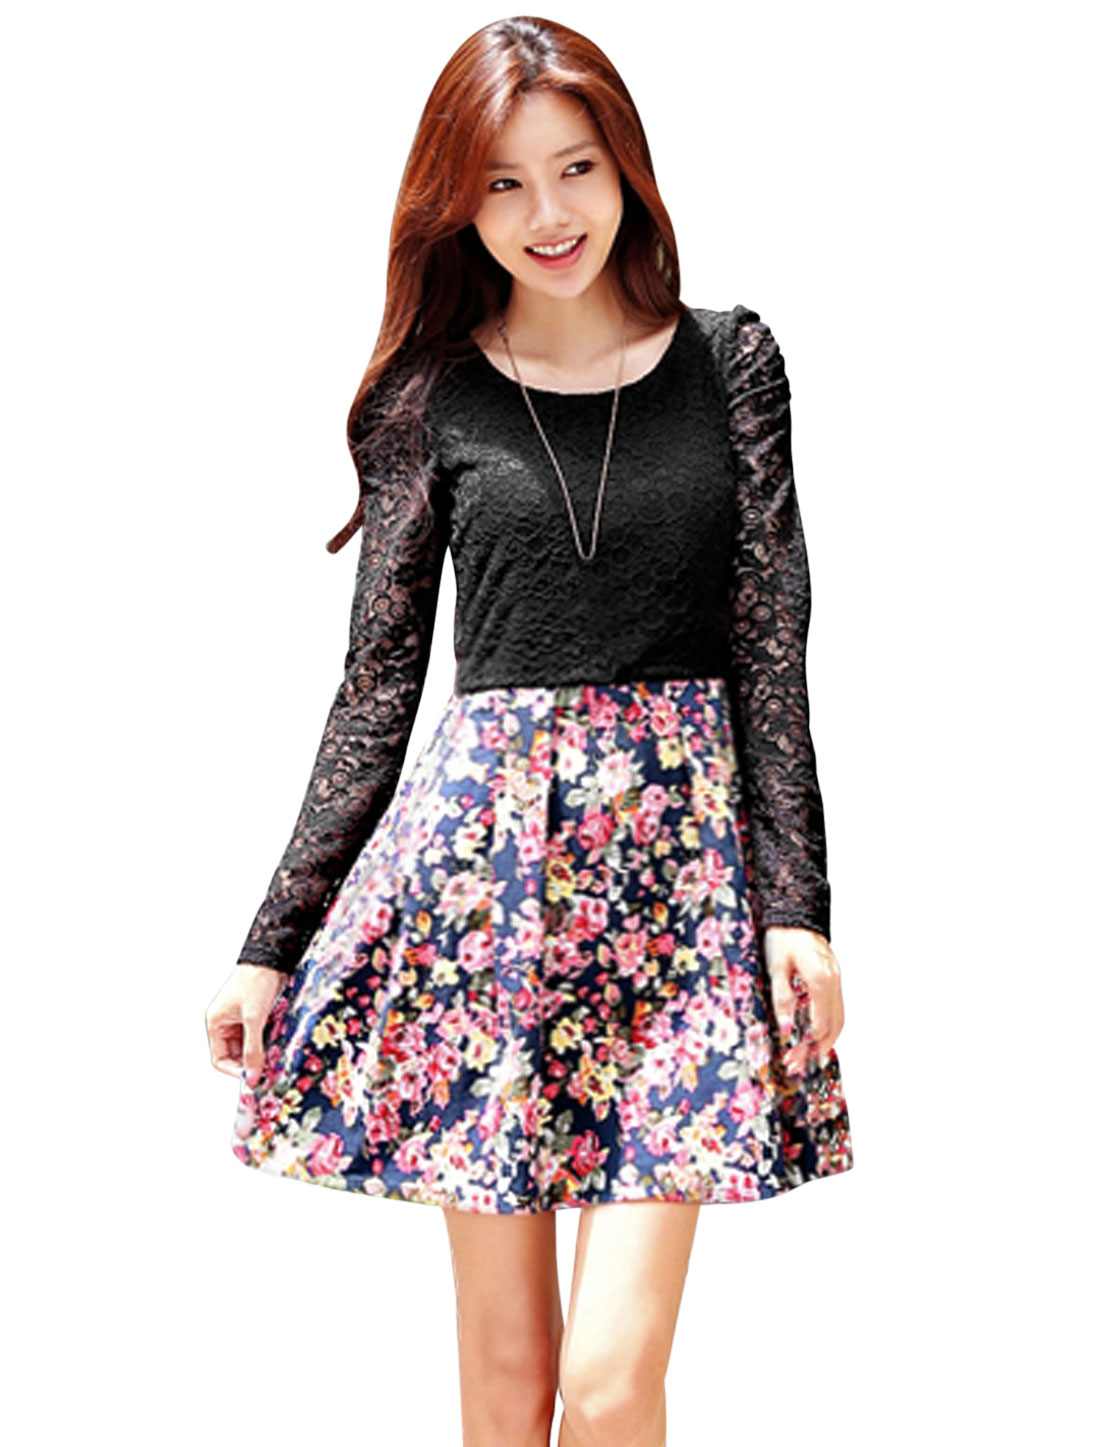 Round Neck Floral Prints Casual A-Line Dress for Women Black Navy Blue S